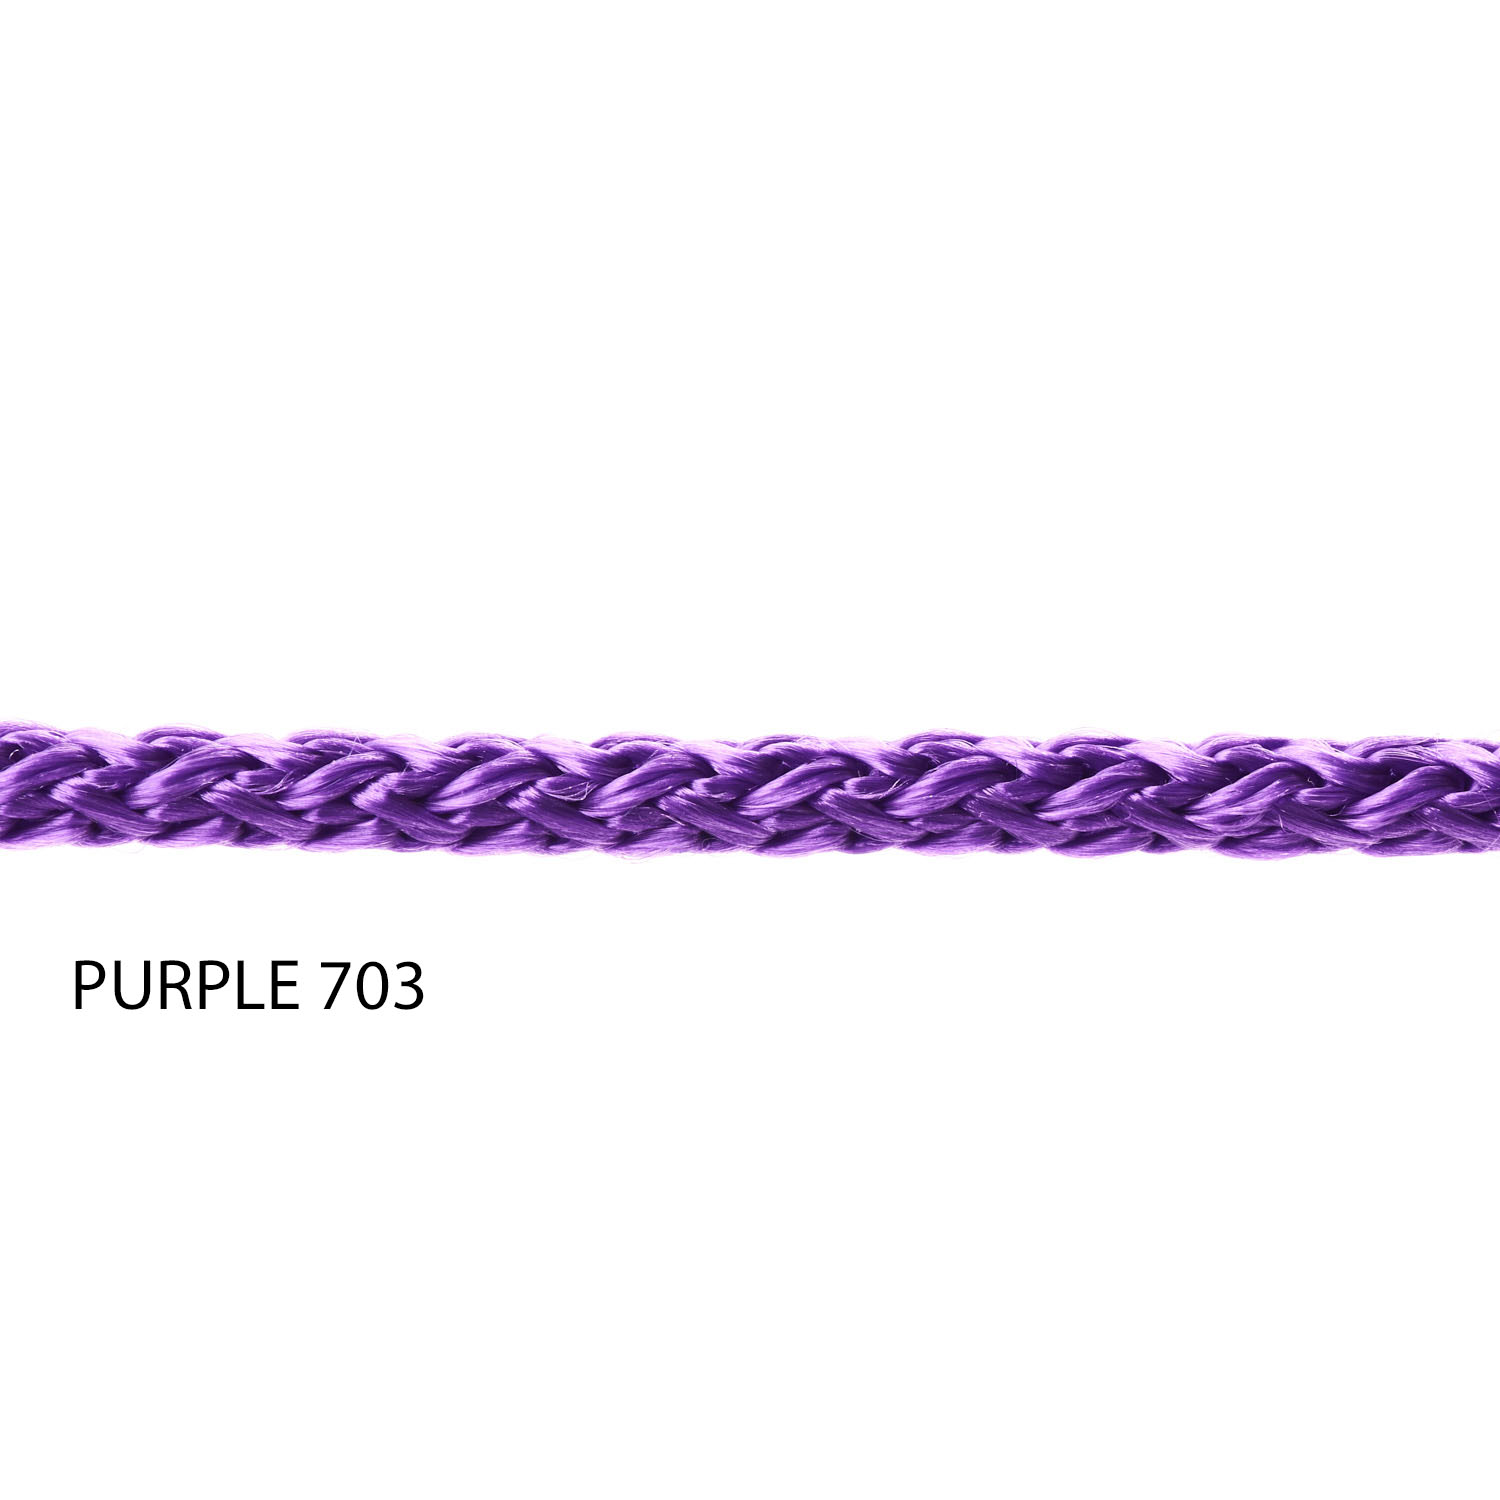 Purple 703 Yarn Colour Polypropylene